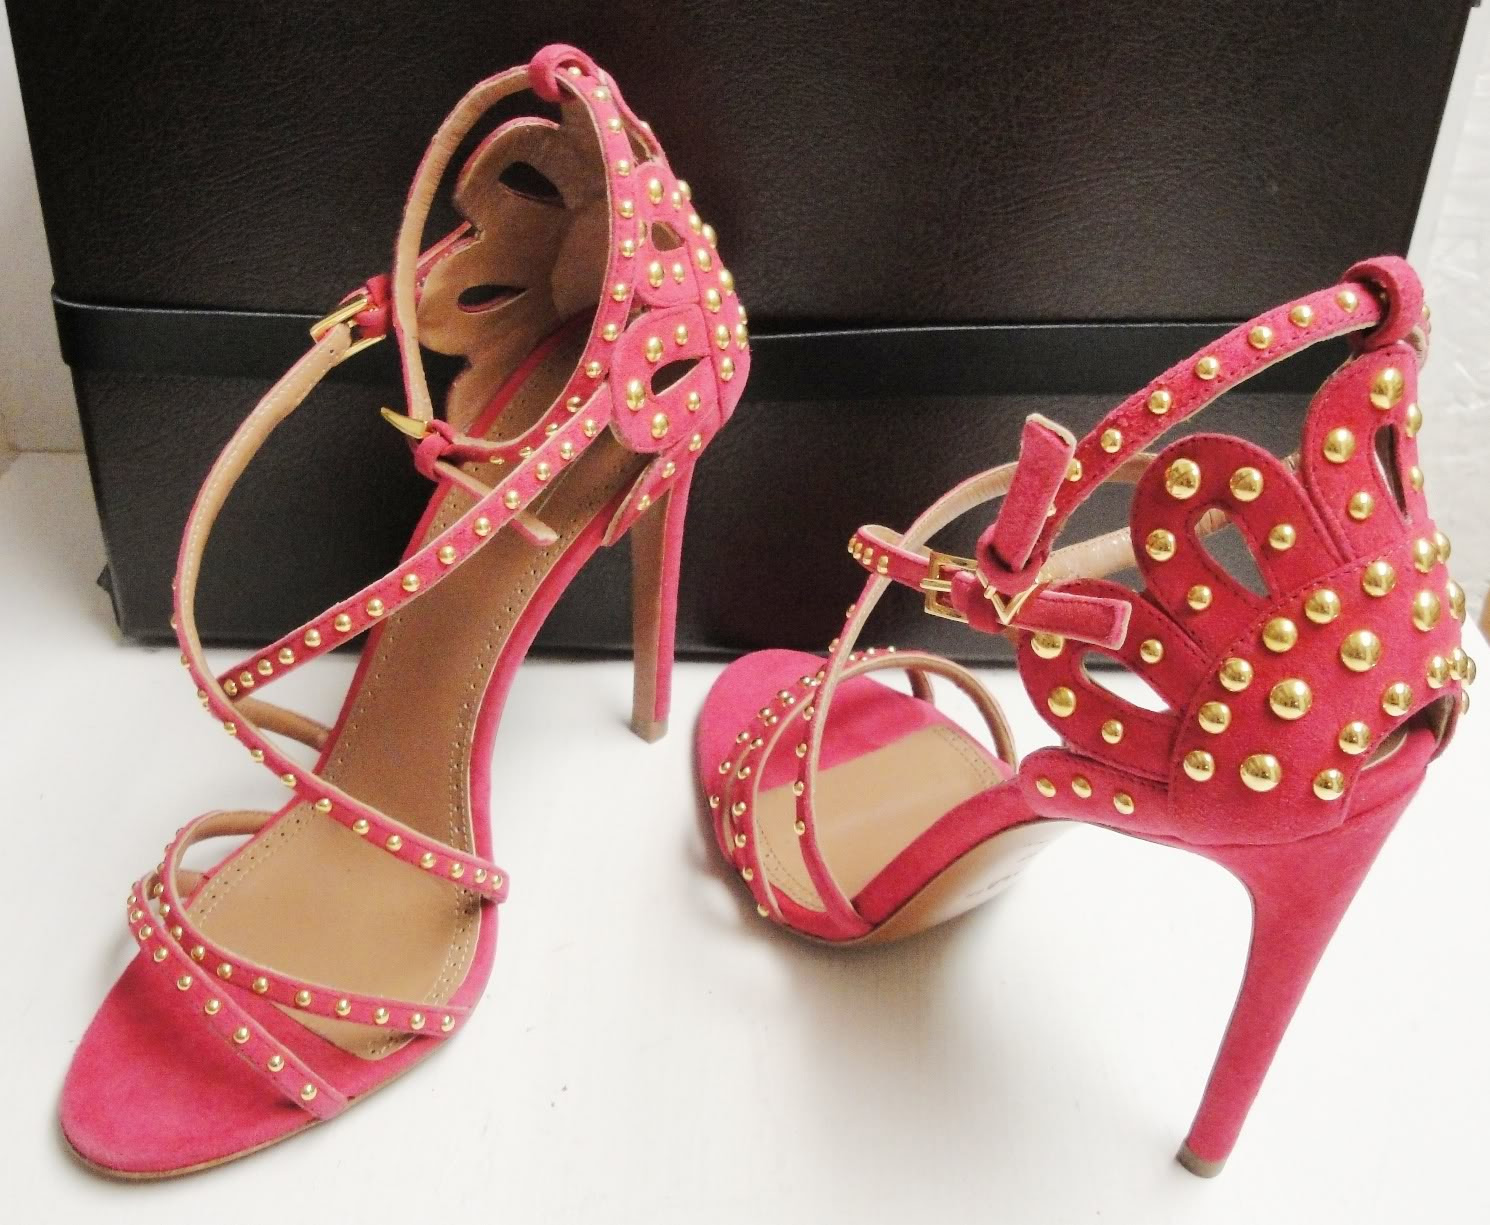 ALAIA Pink Suede Studded Strappy Open Toe Heels Sandals